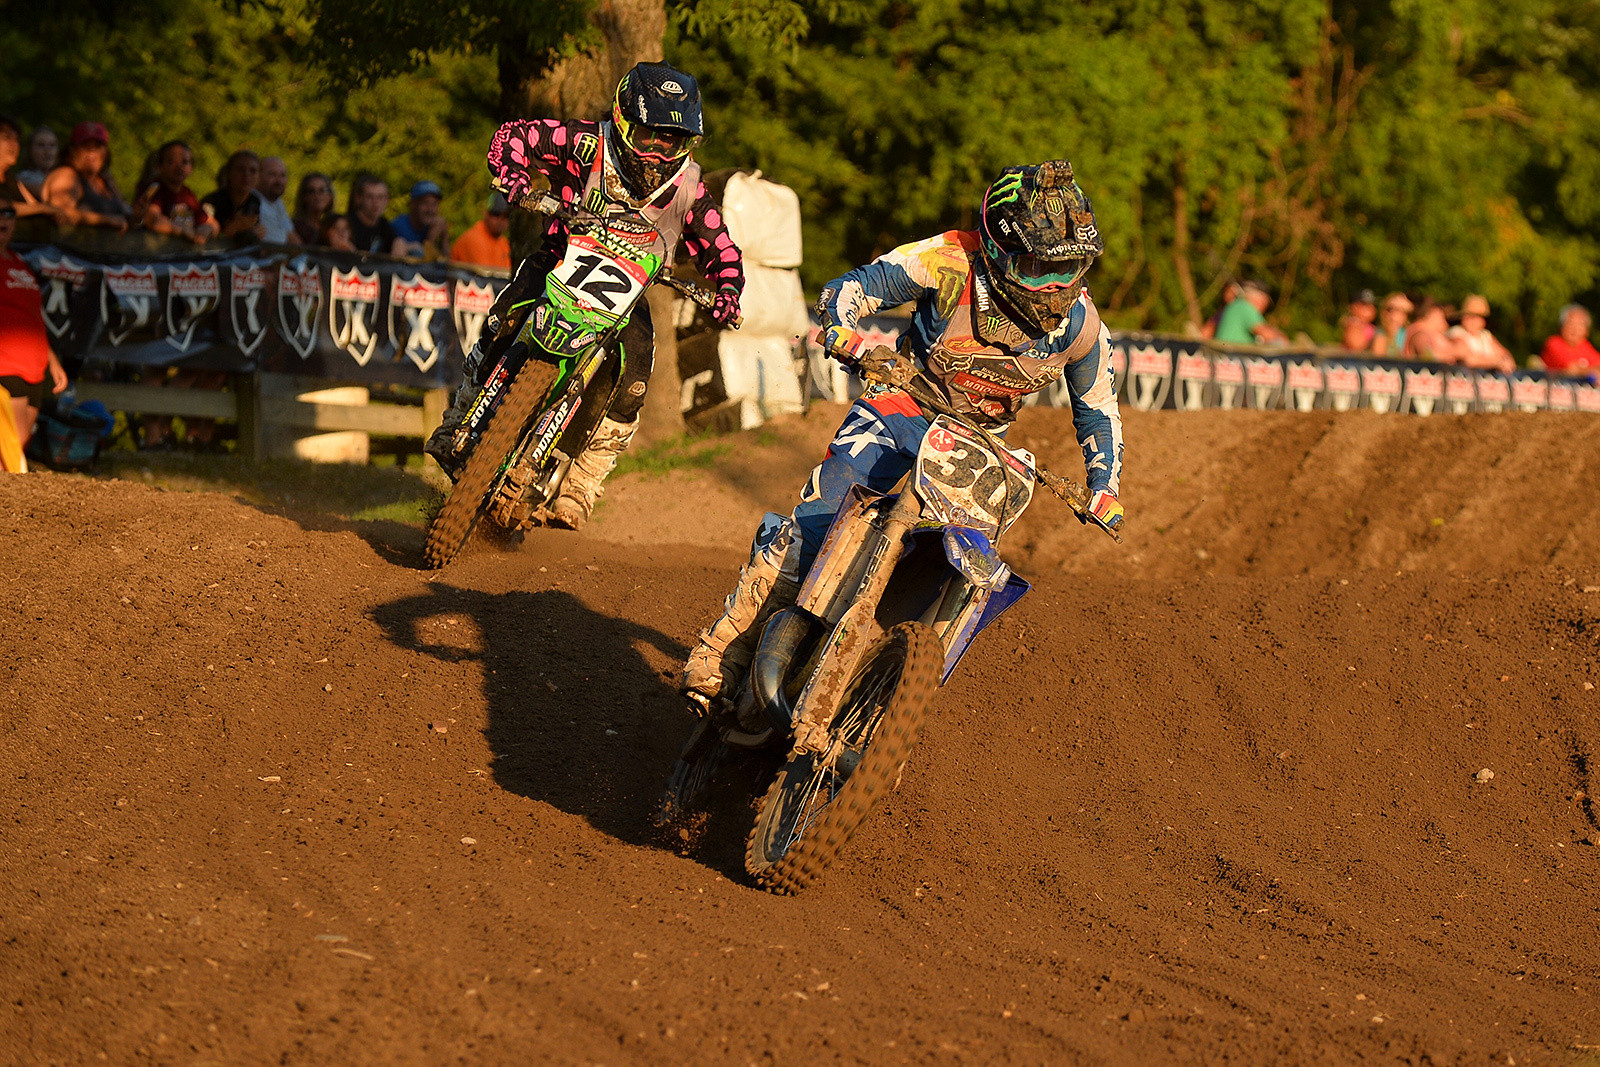 The Women's (12+) Amateur class has produced some of the most action-packed racing of the week at Loretta Lynn's.